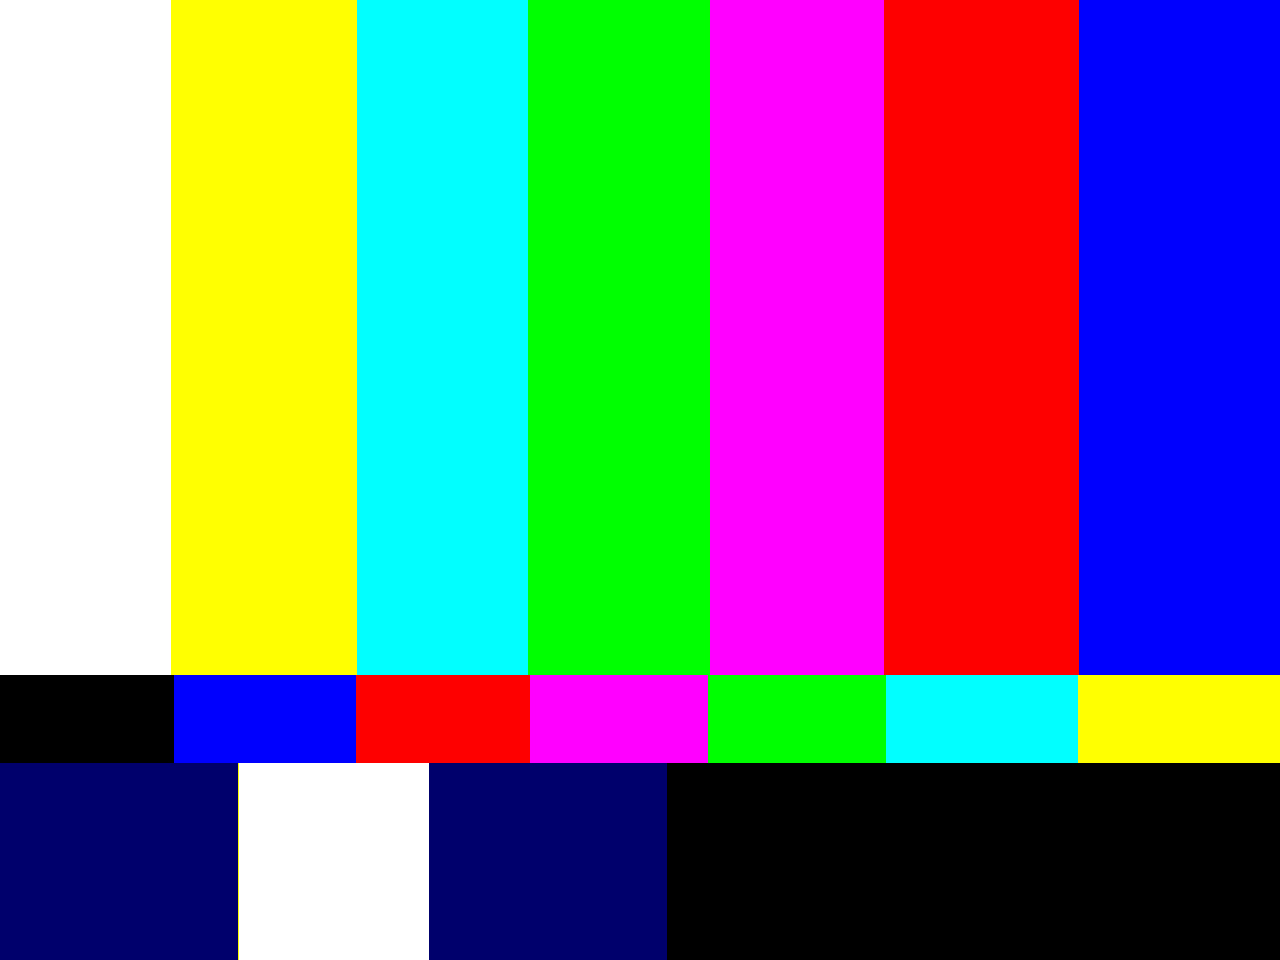 Color_Test_Pattern.jpg